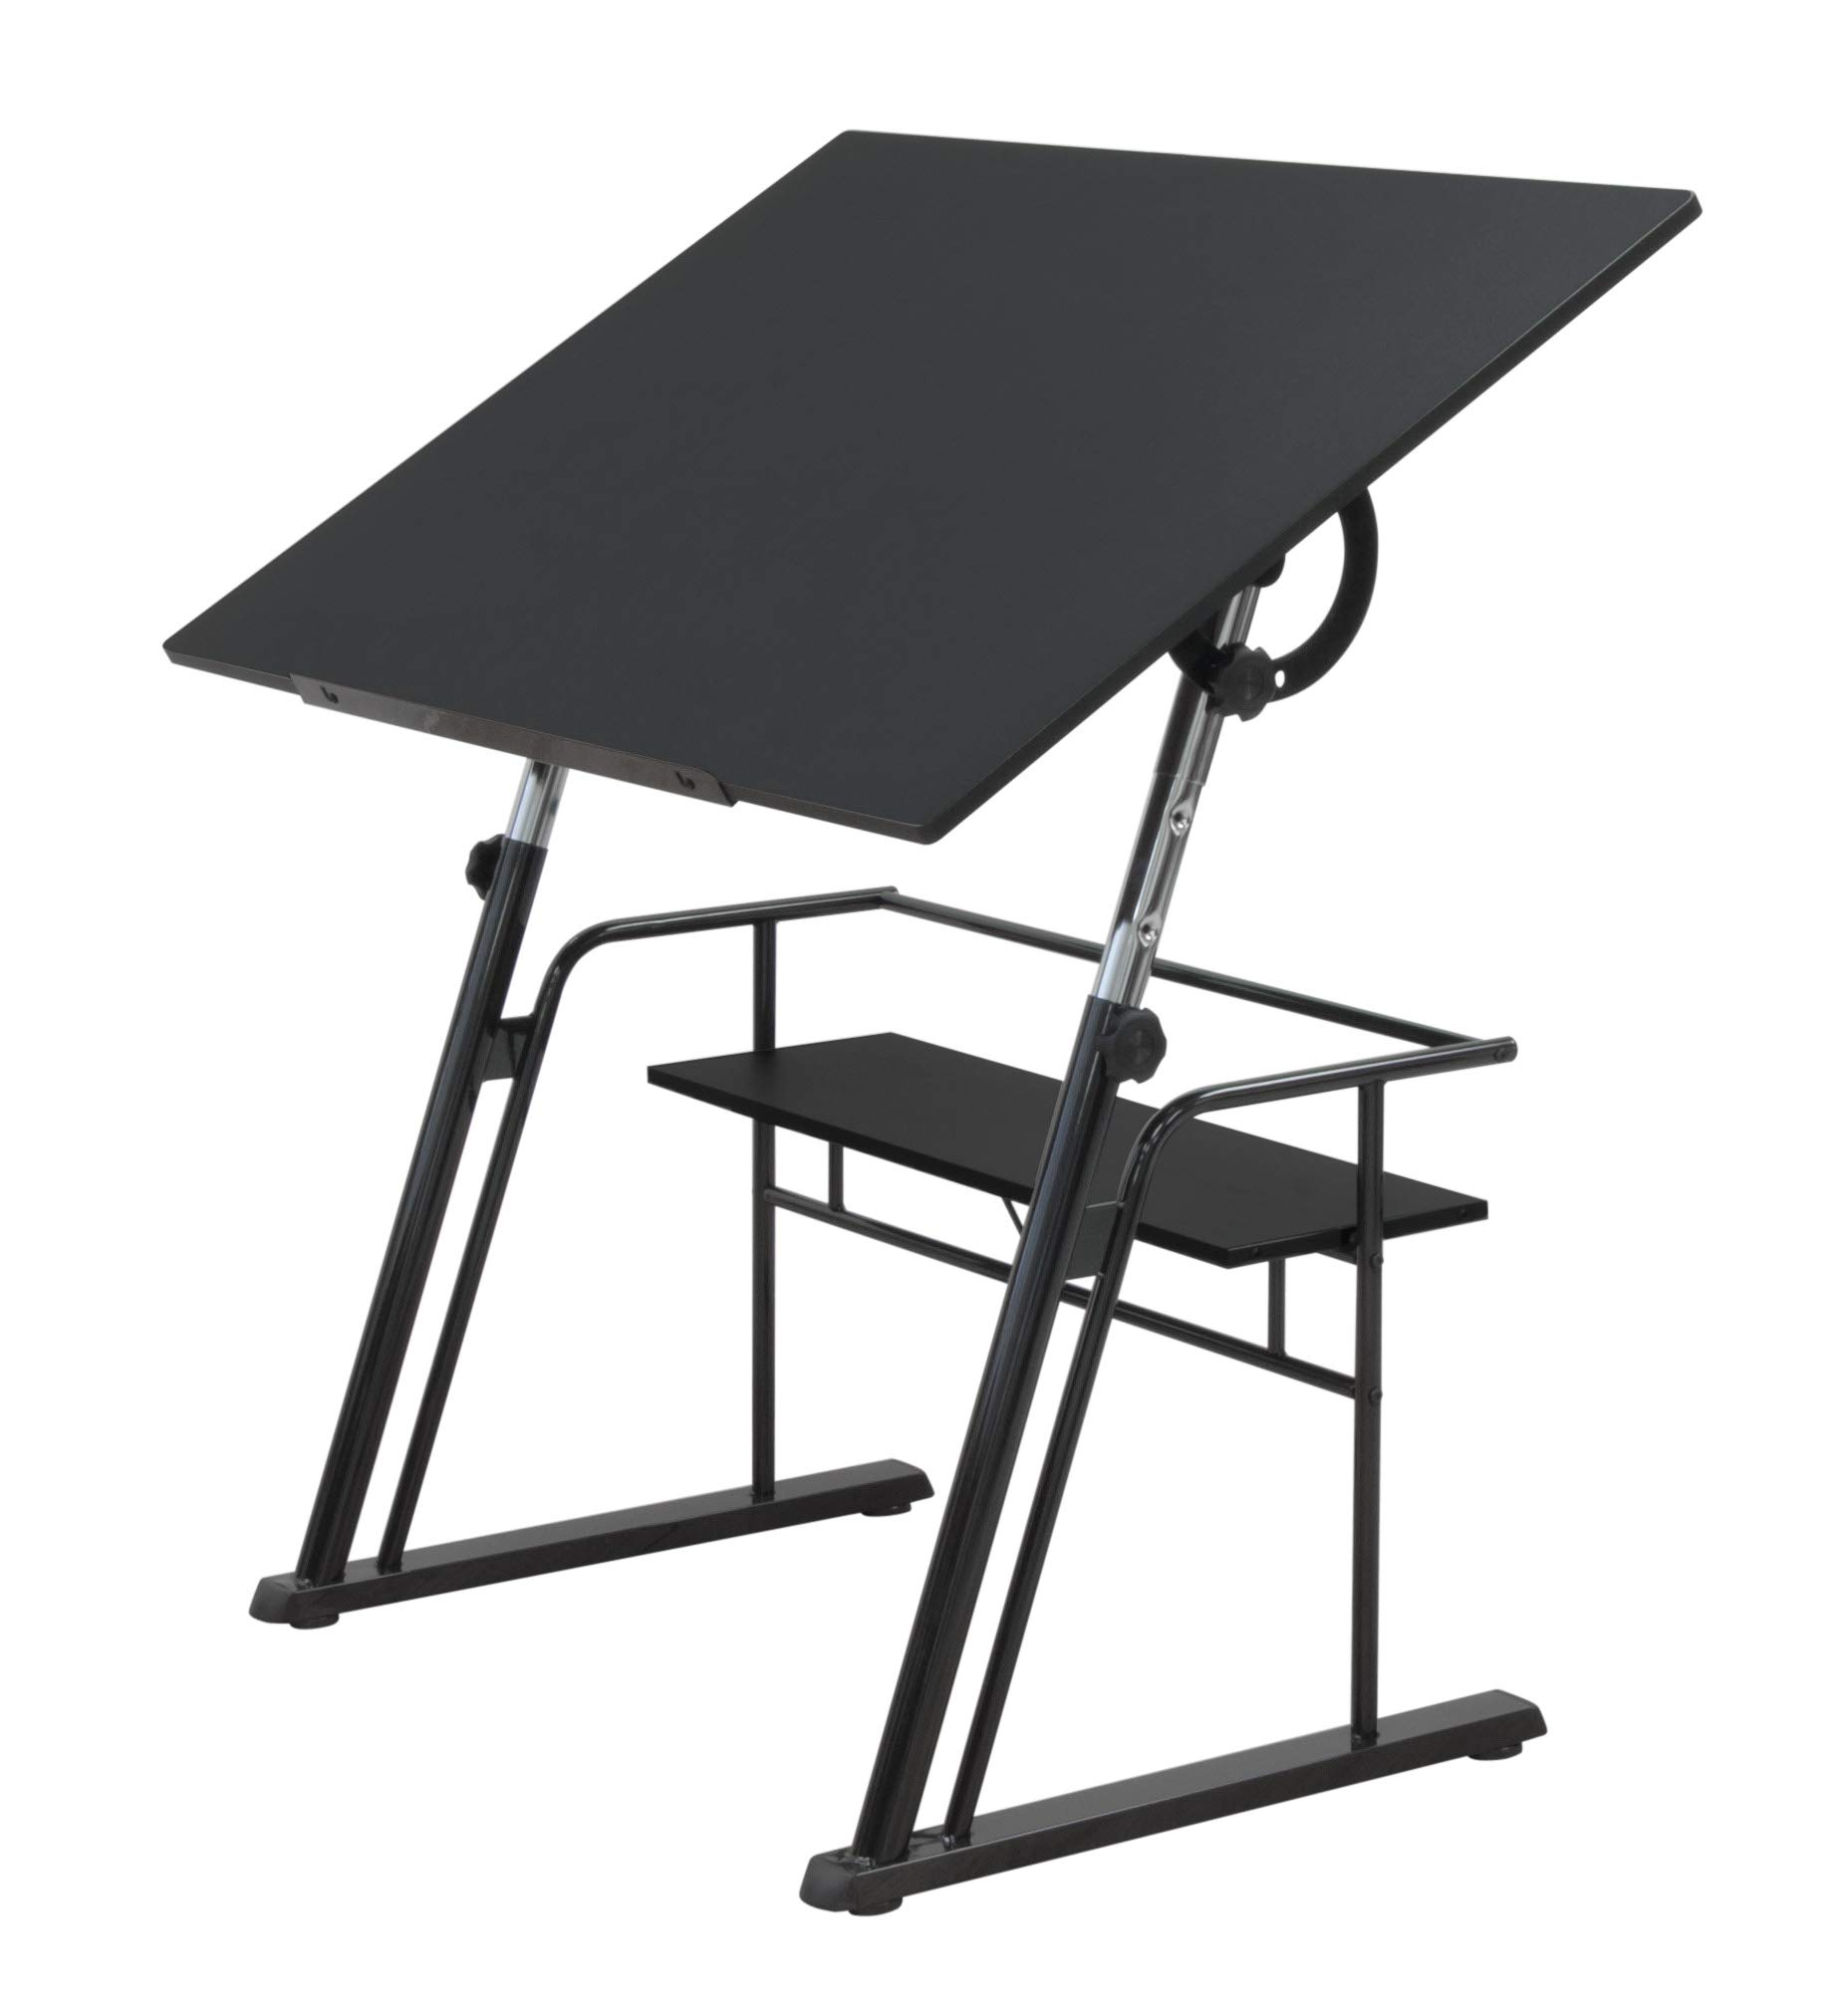 STUDIO DESIGNS Zenith Drafting Table in Black 13340